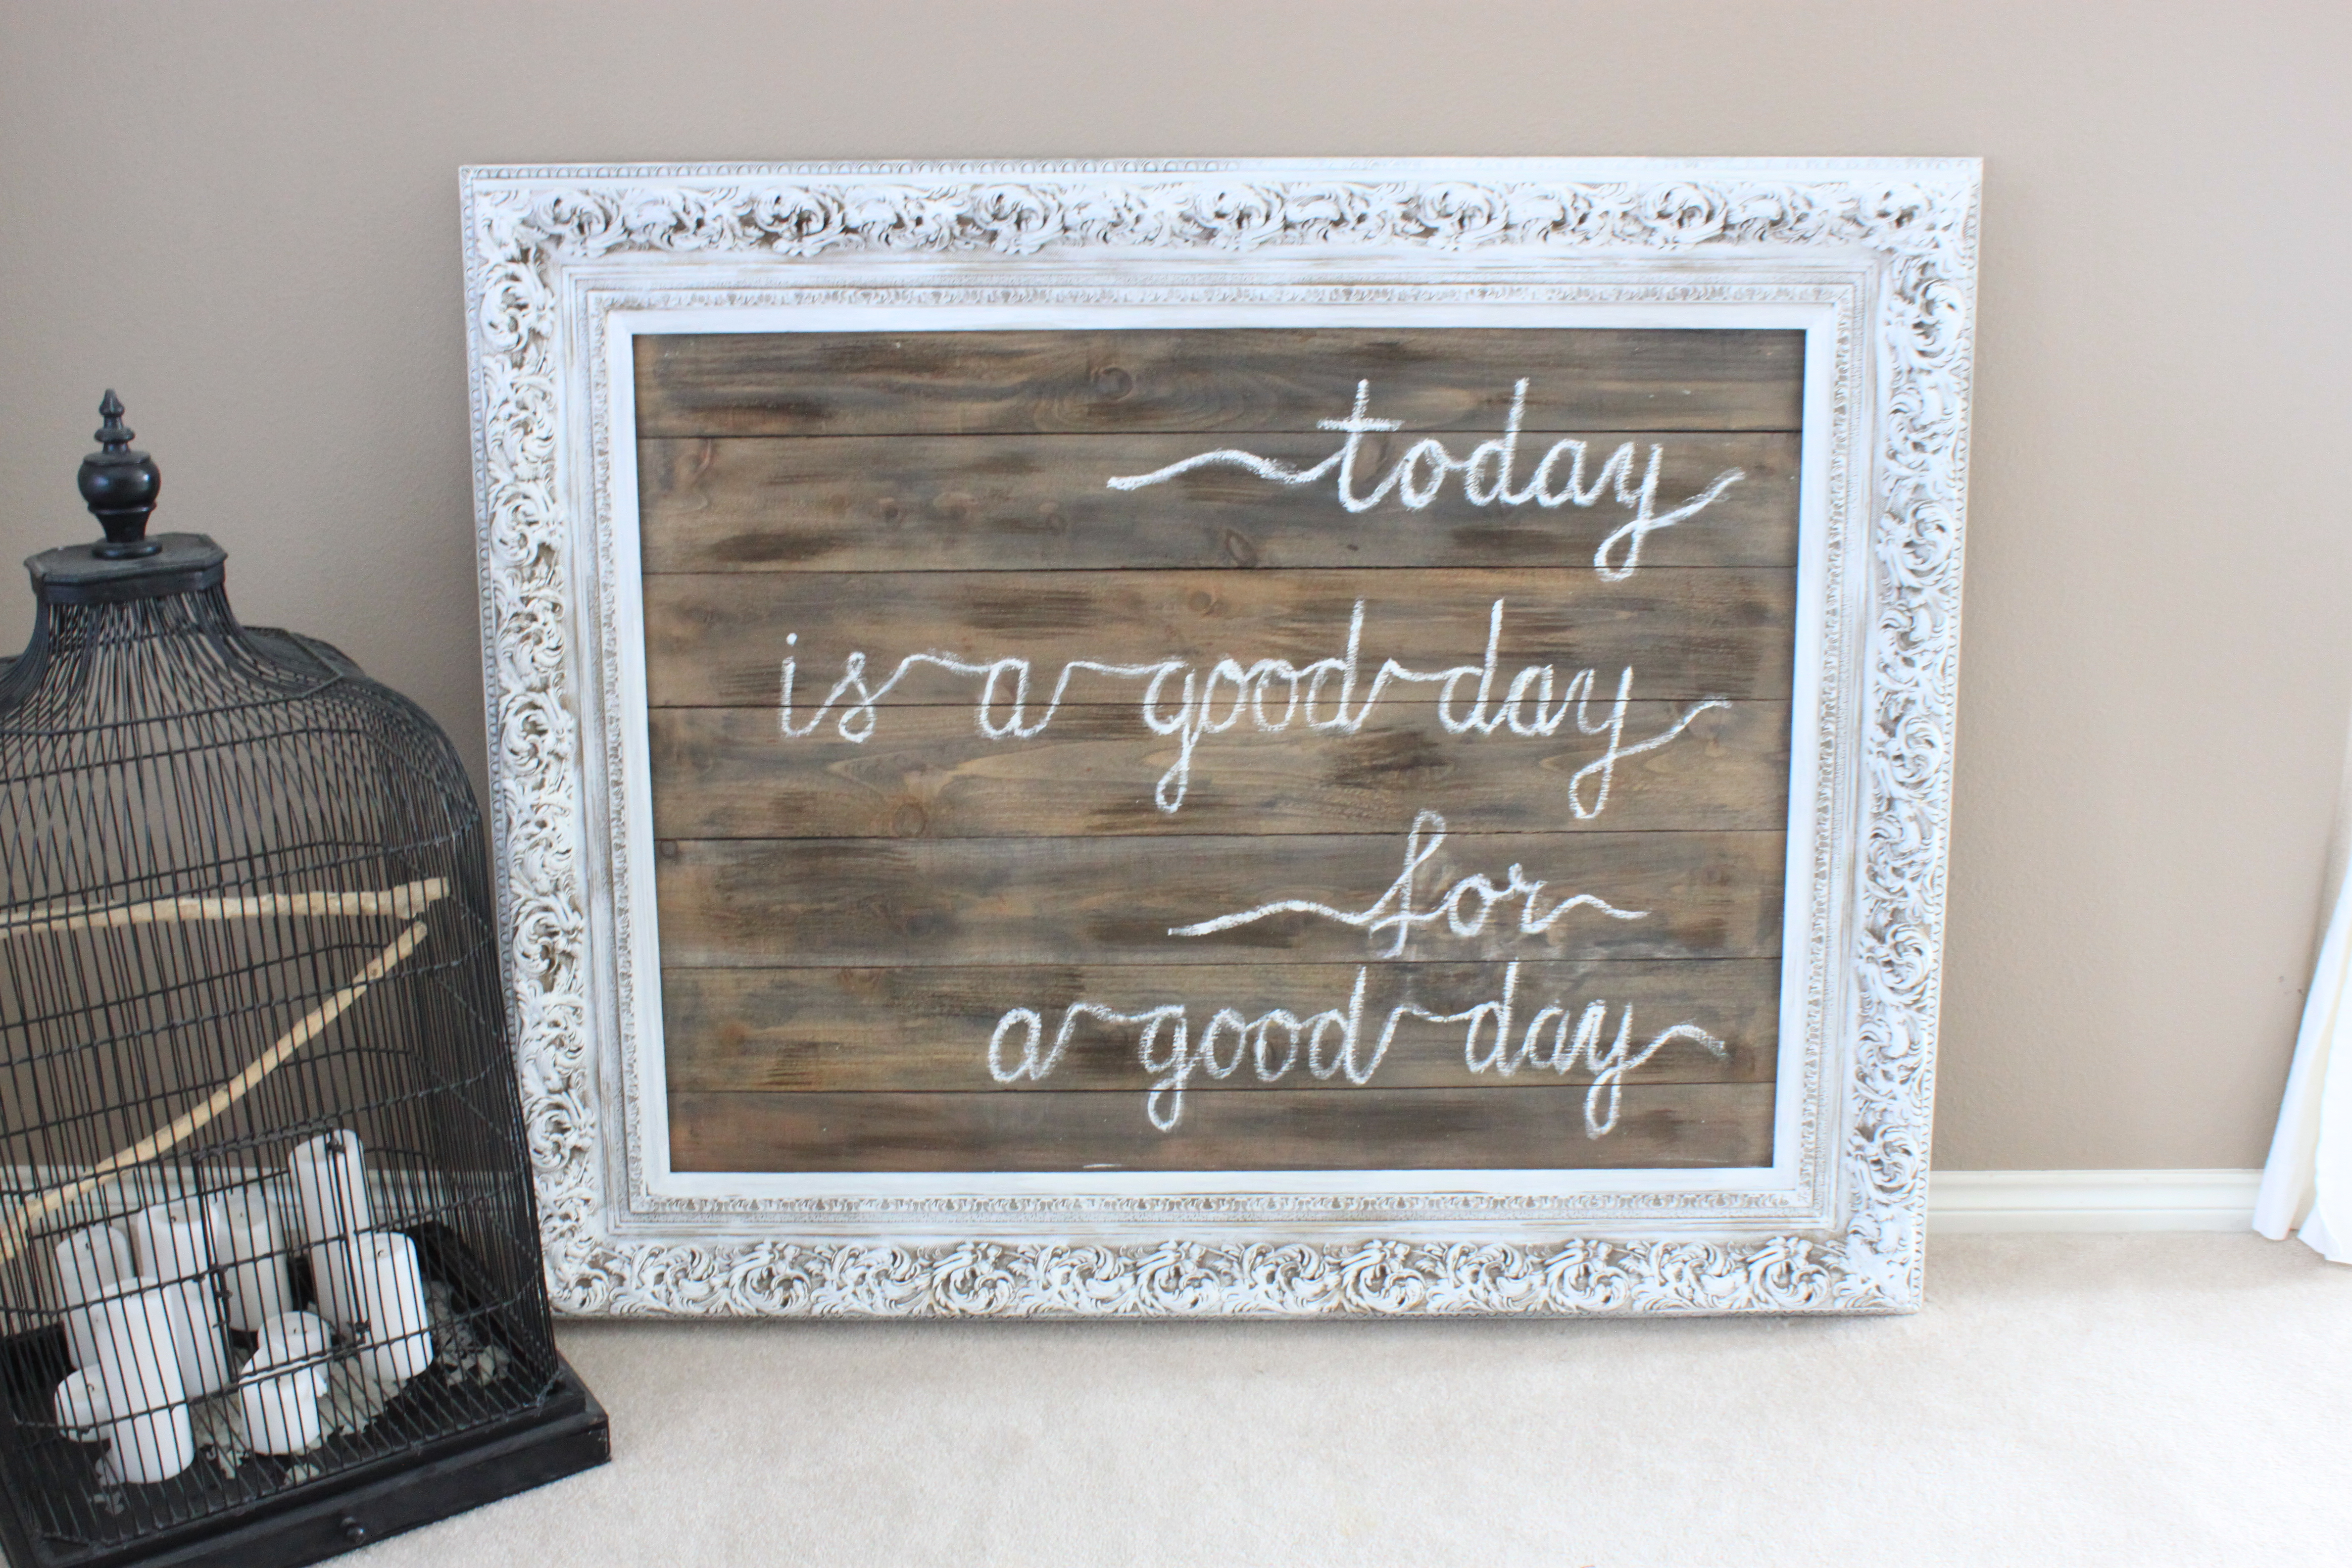 as i type this i am watching fixer upper re runs and the episode where joanna created a wall sign with the saying today is a good day for a good day is